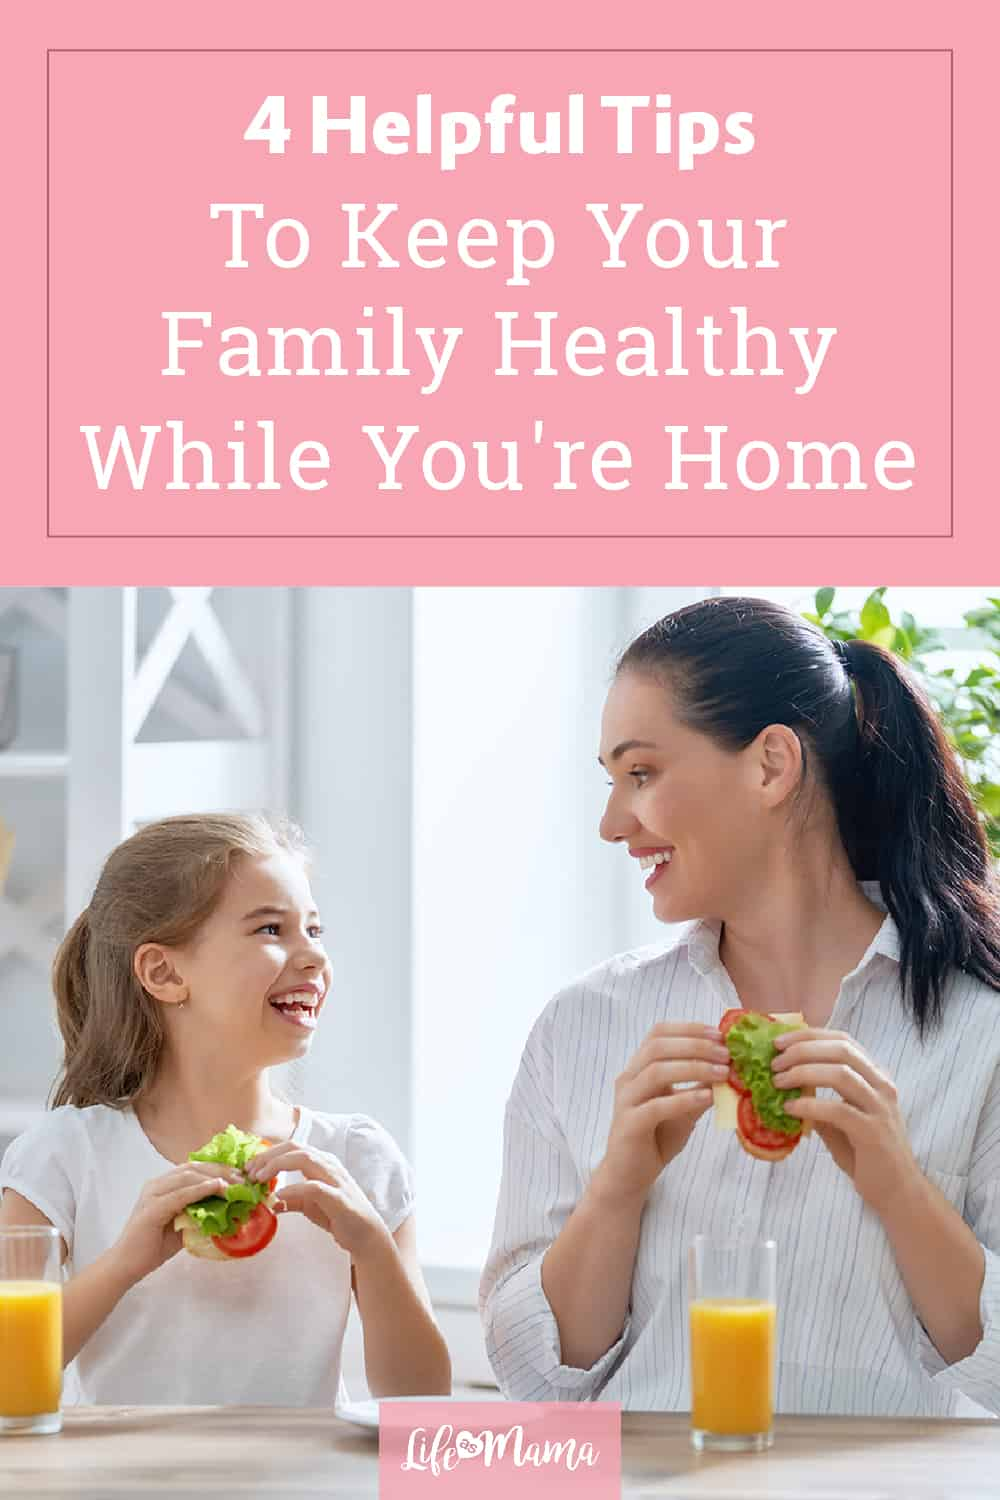 How To Keep Your Family Healthy During Social Distancing-02-02, family health